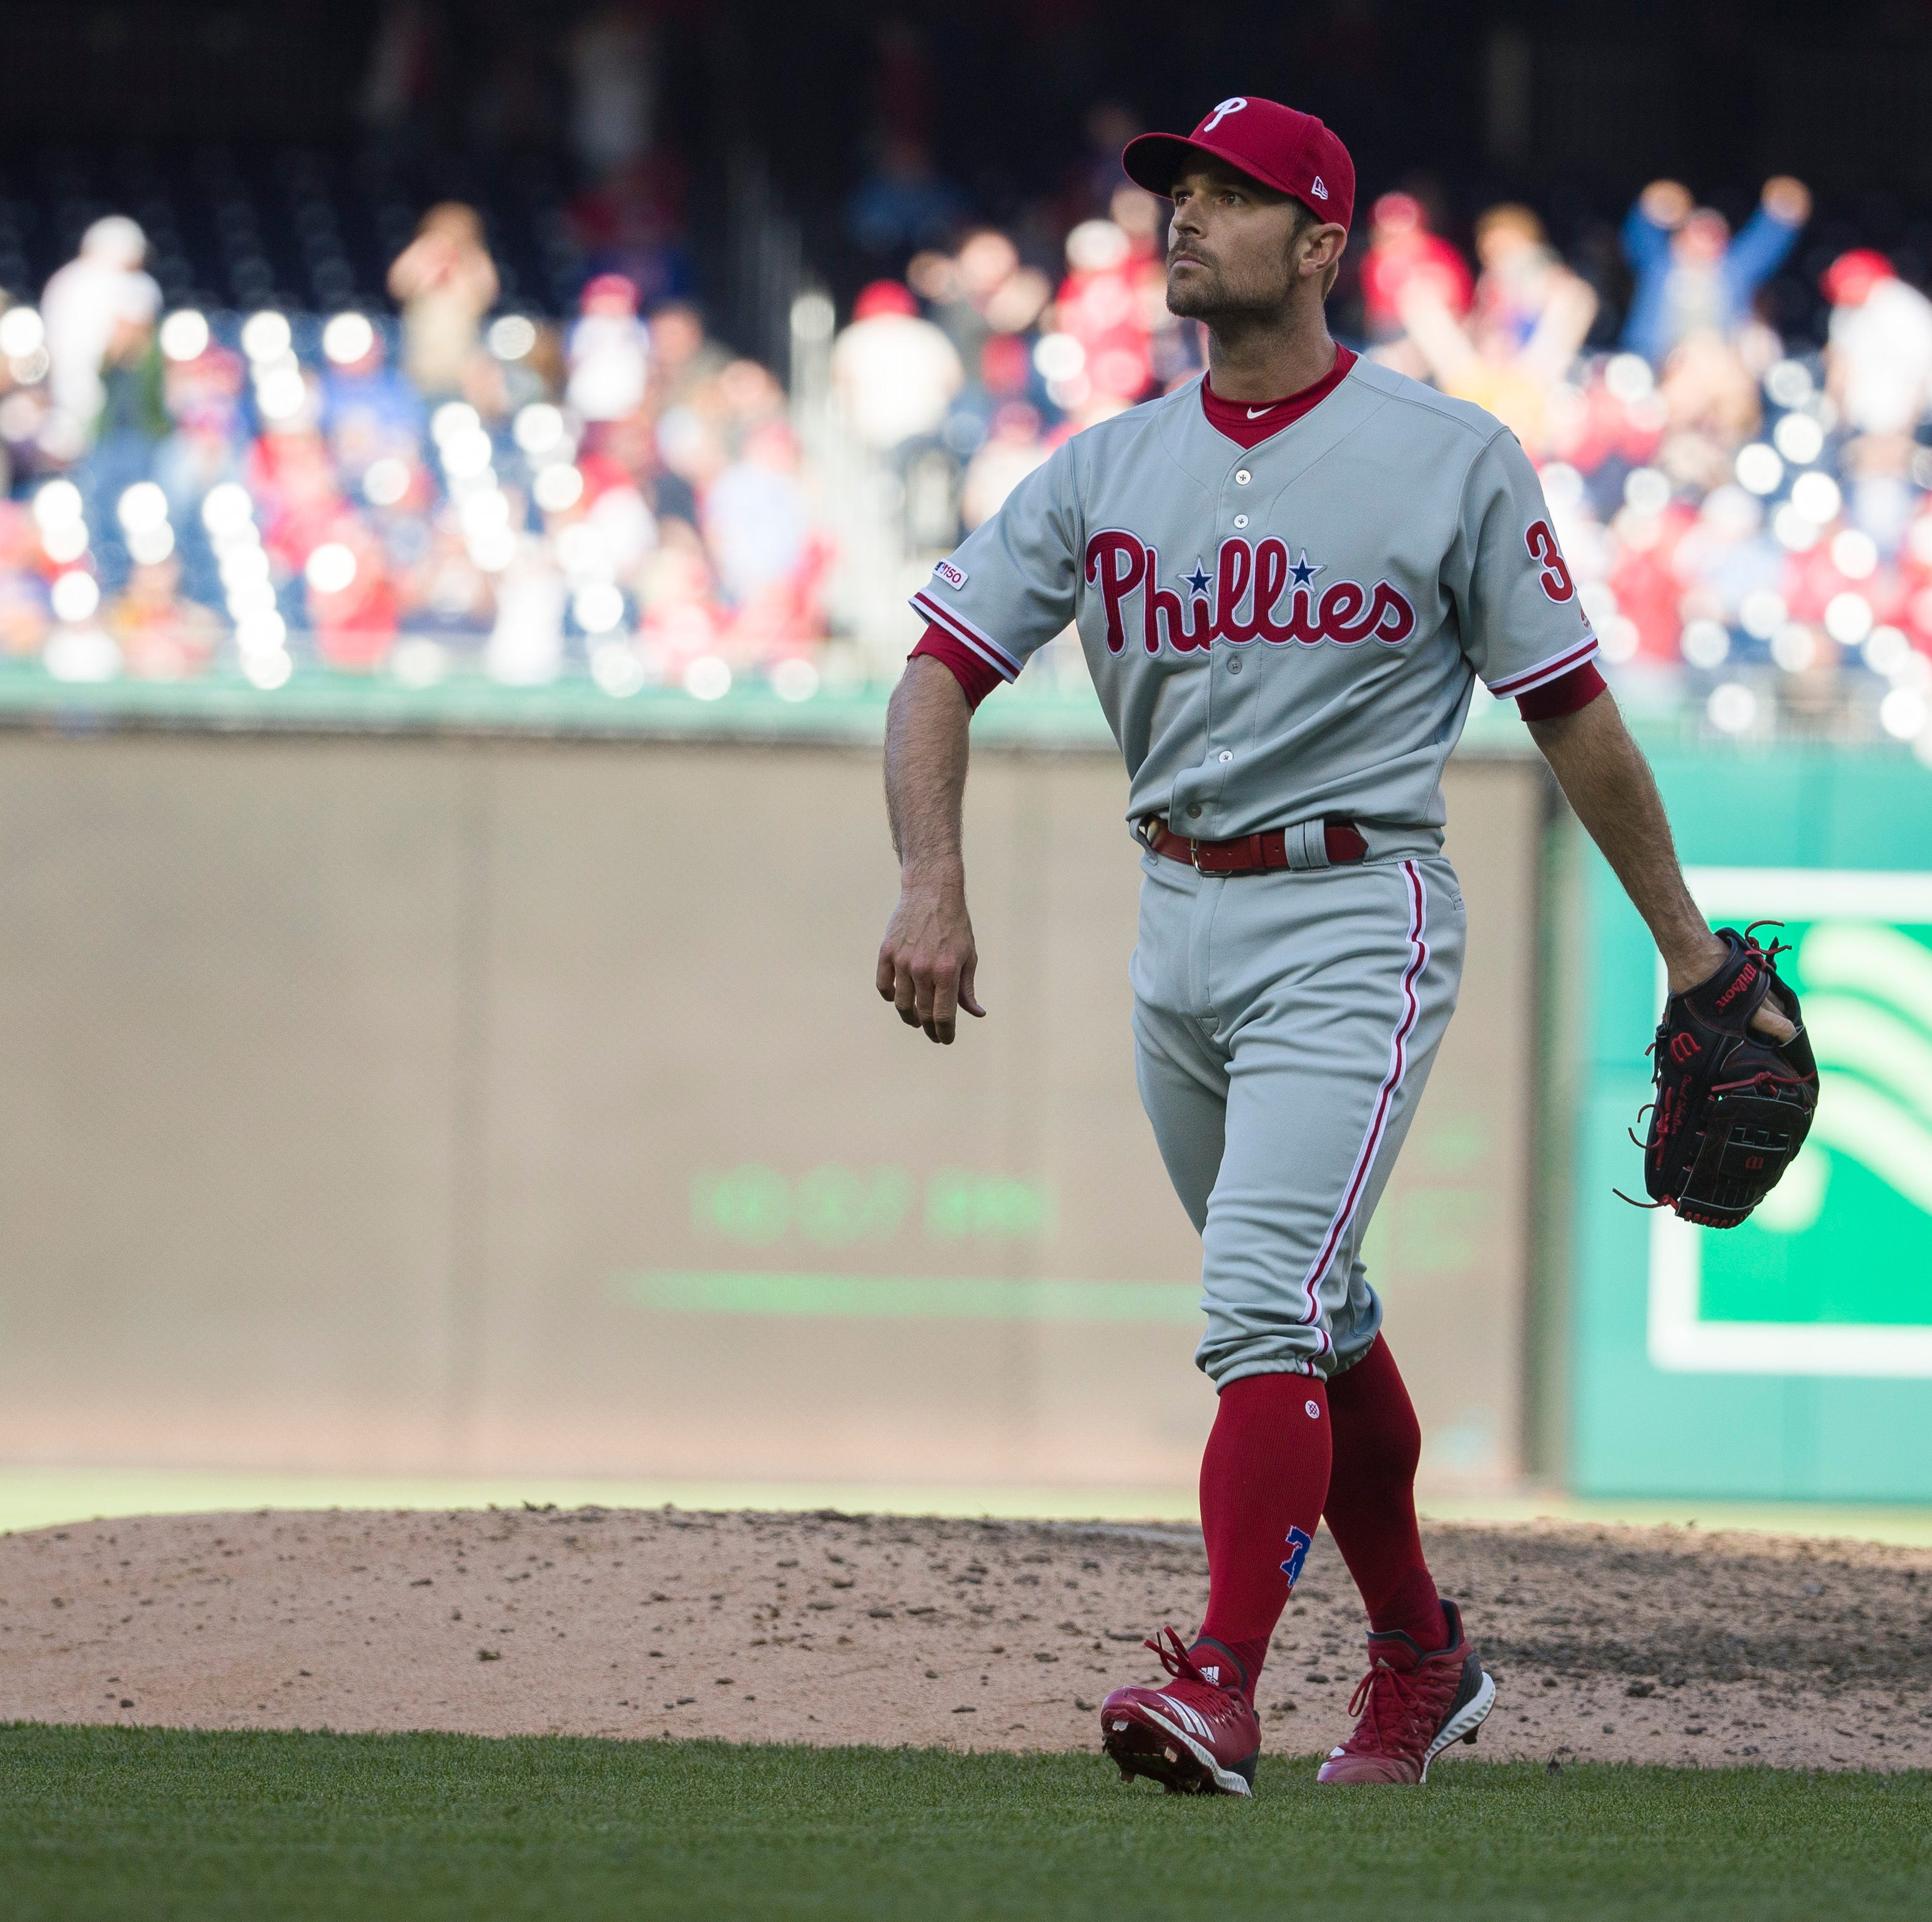 Seeking relief: Robertson's struggles cost Phillies in loss to Washington